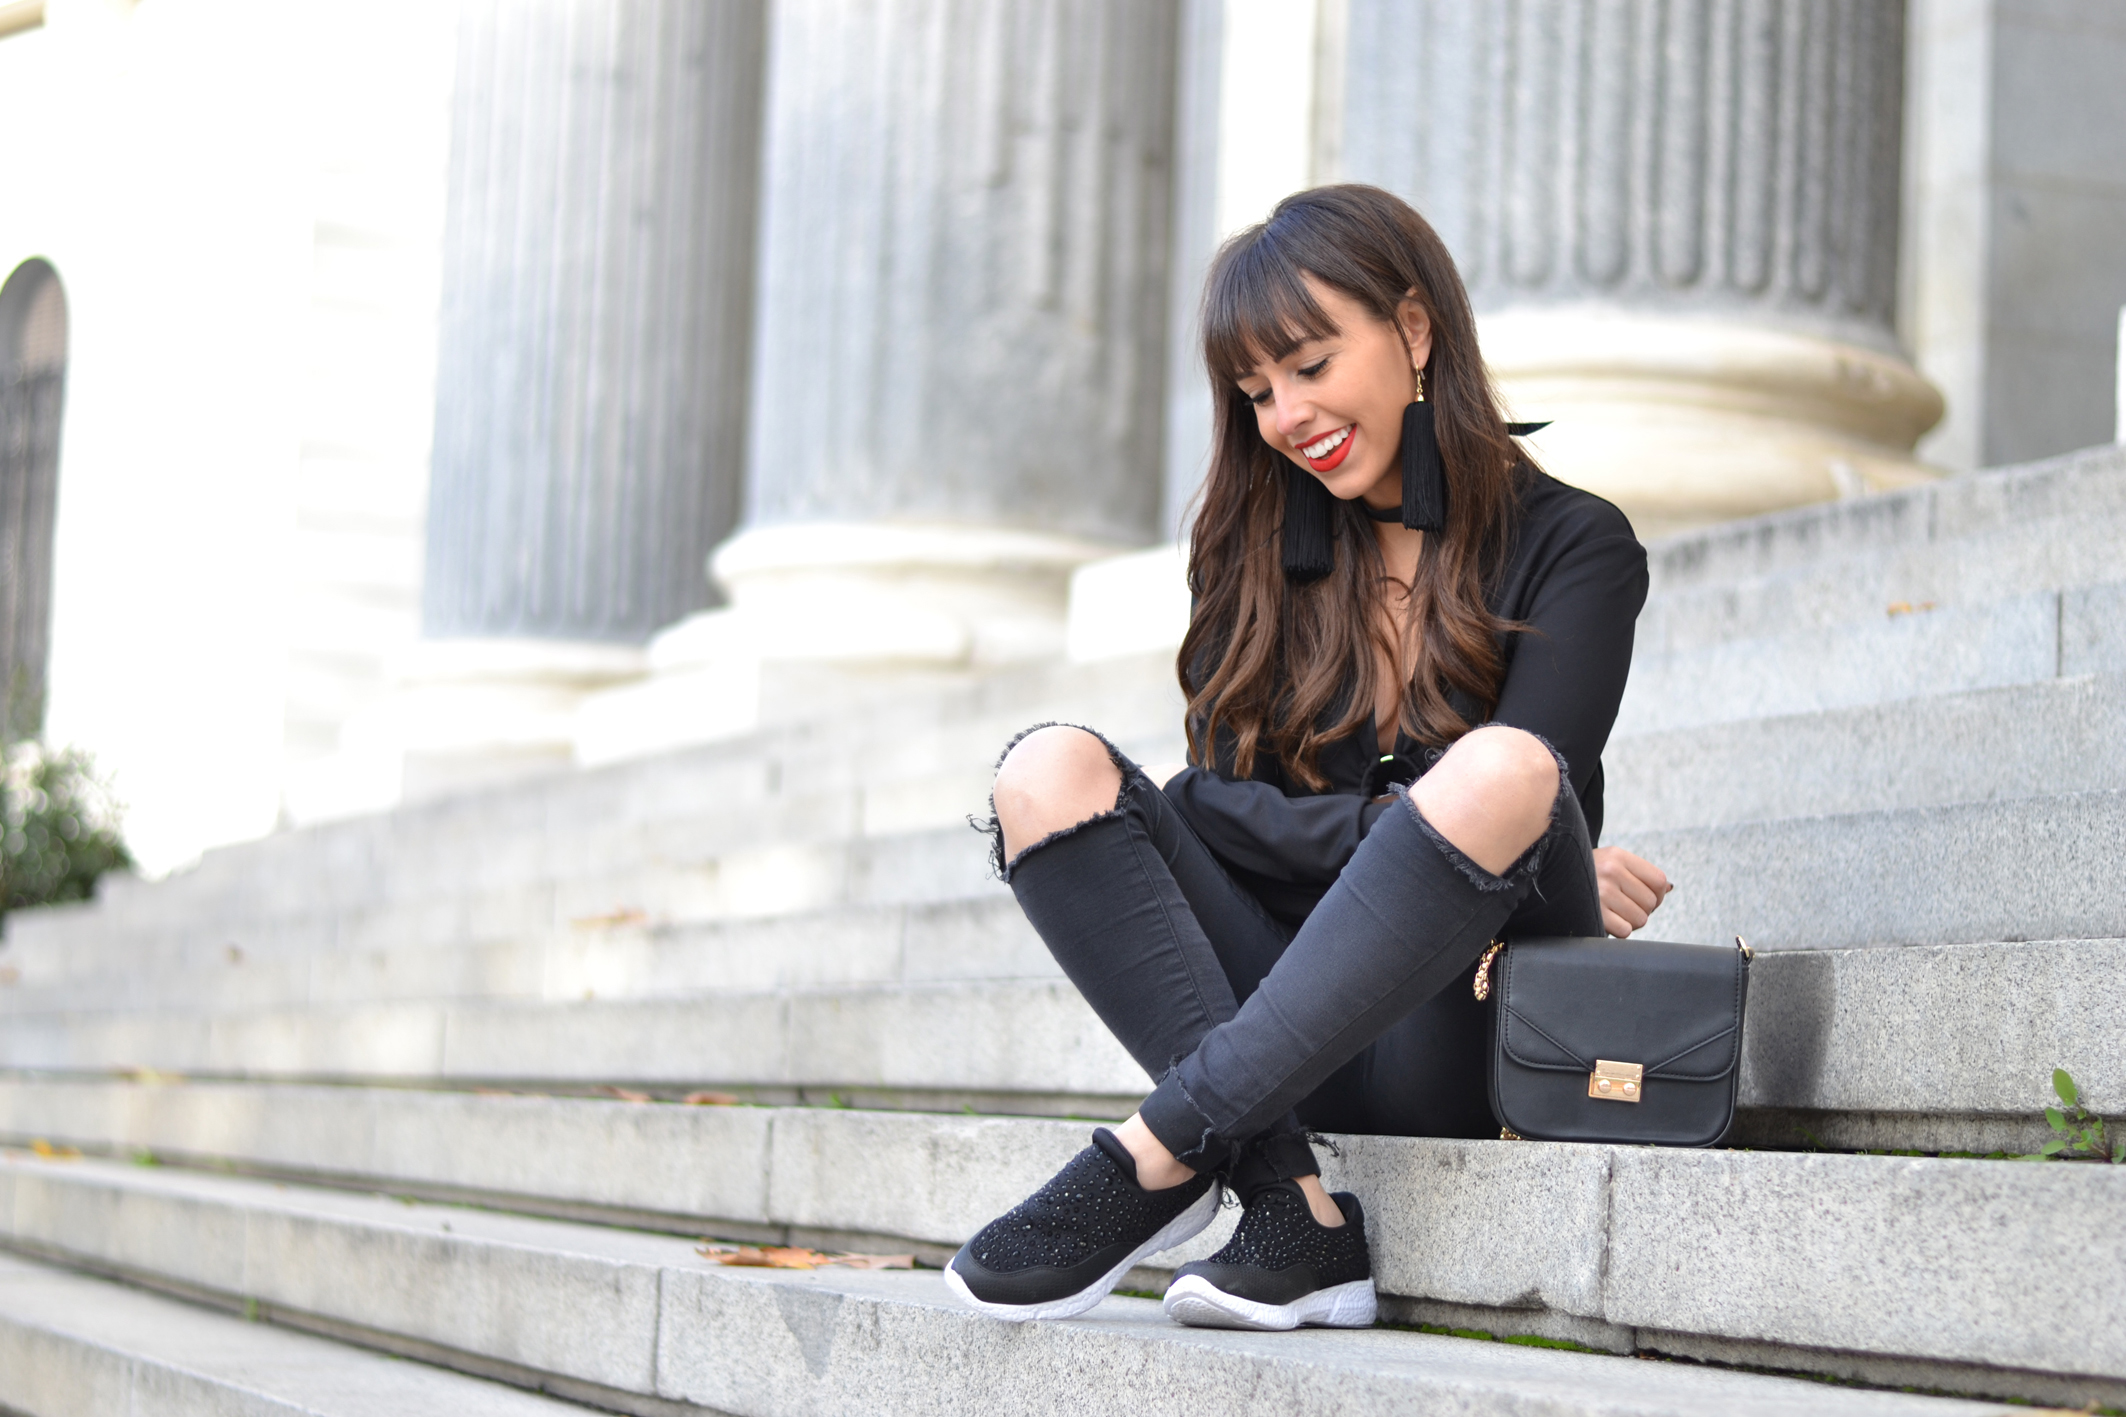 Street style, casual outfit, black crop top outfit ideas, jeweled sneakers